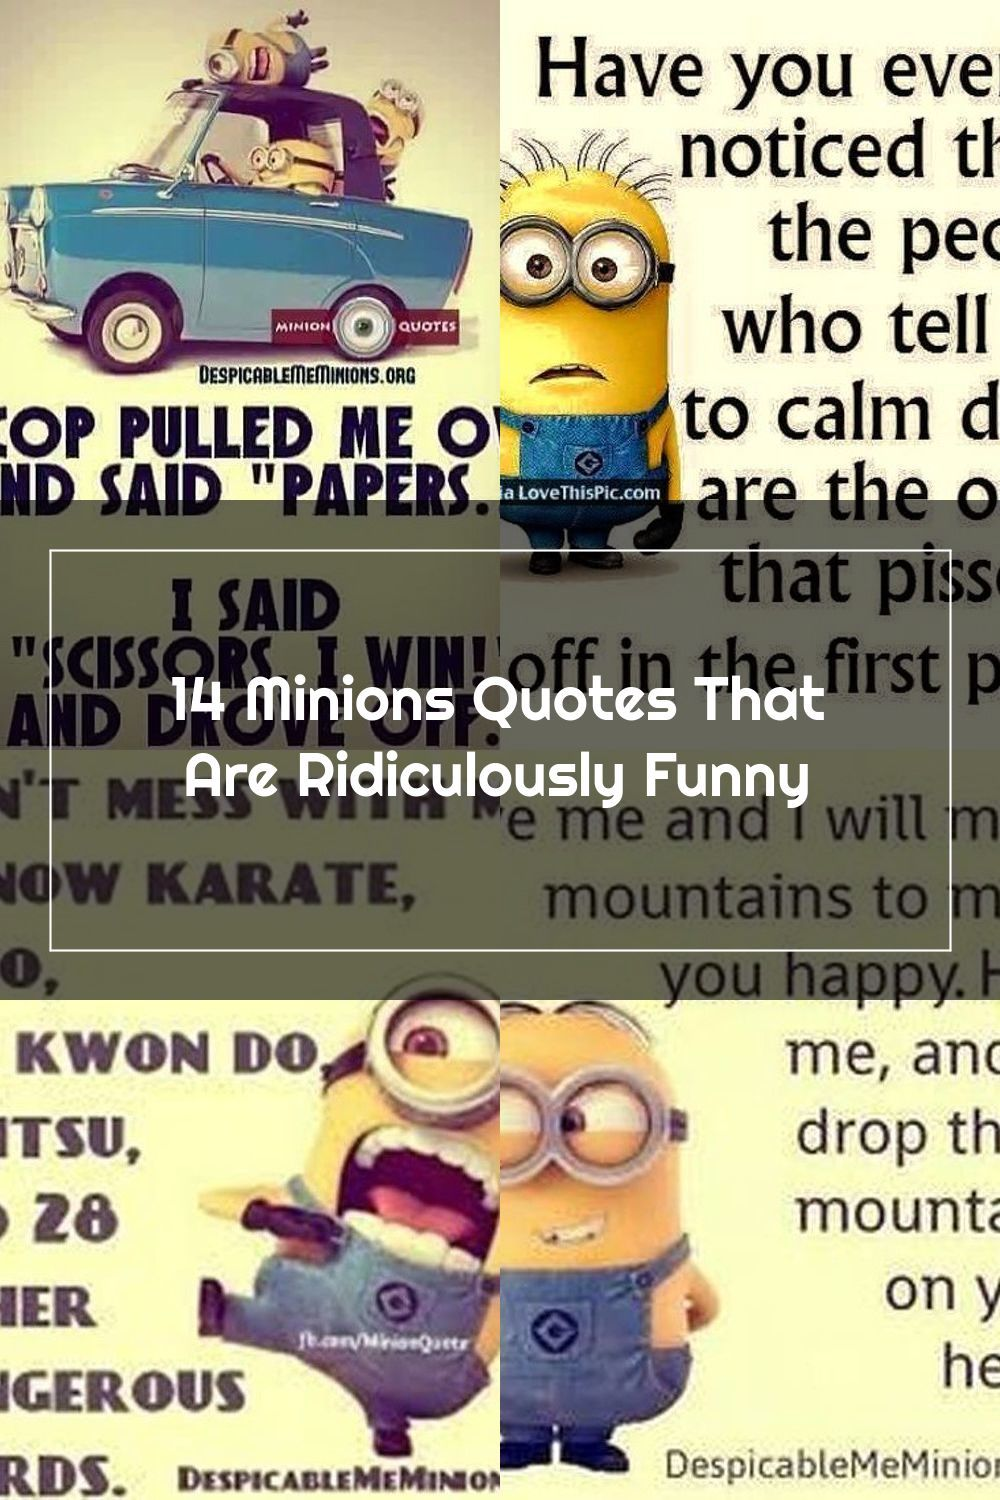 Cheer Yourself Up With These Ultra Hilarious Quotes From The Minions In 2020 Funny Quotes Minions Quotes Minions